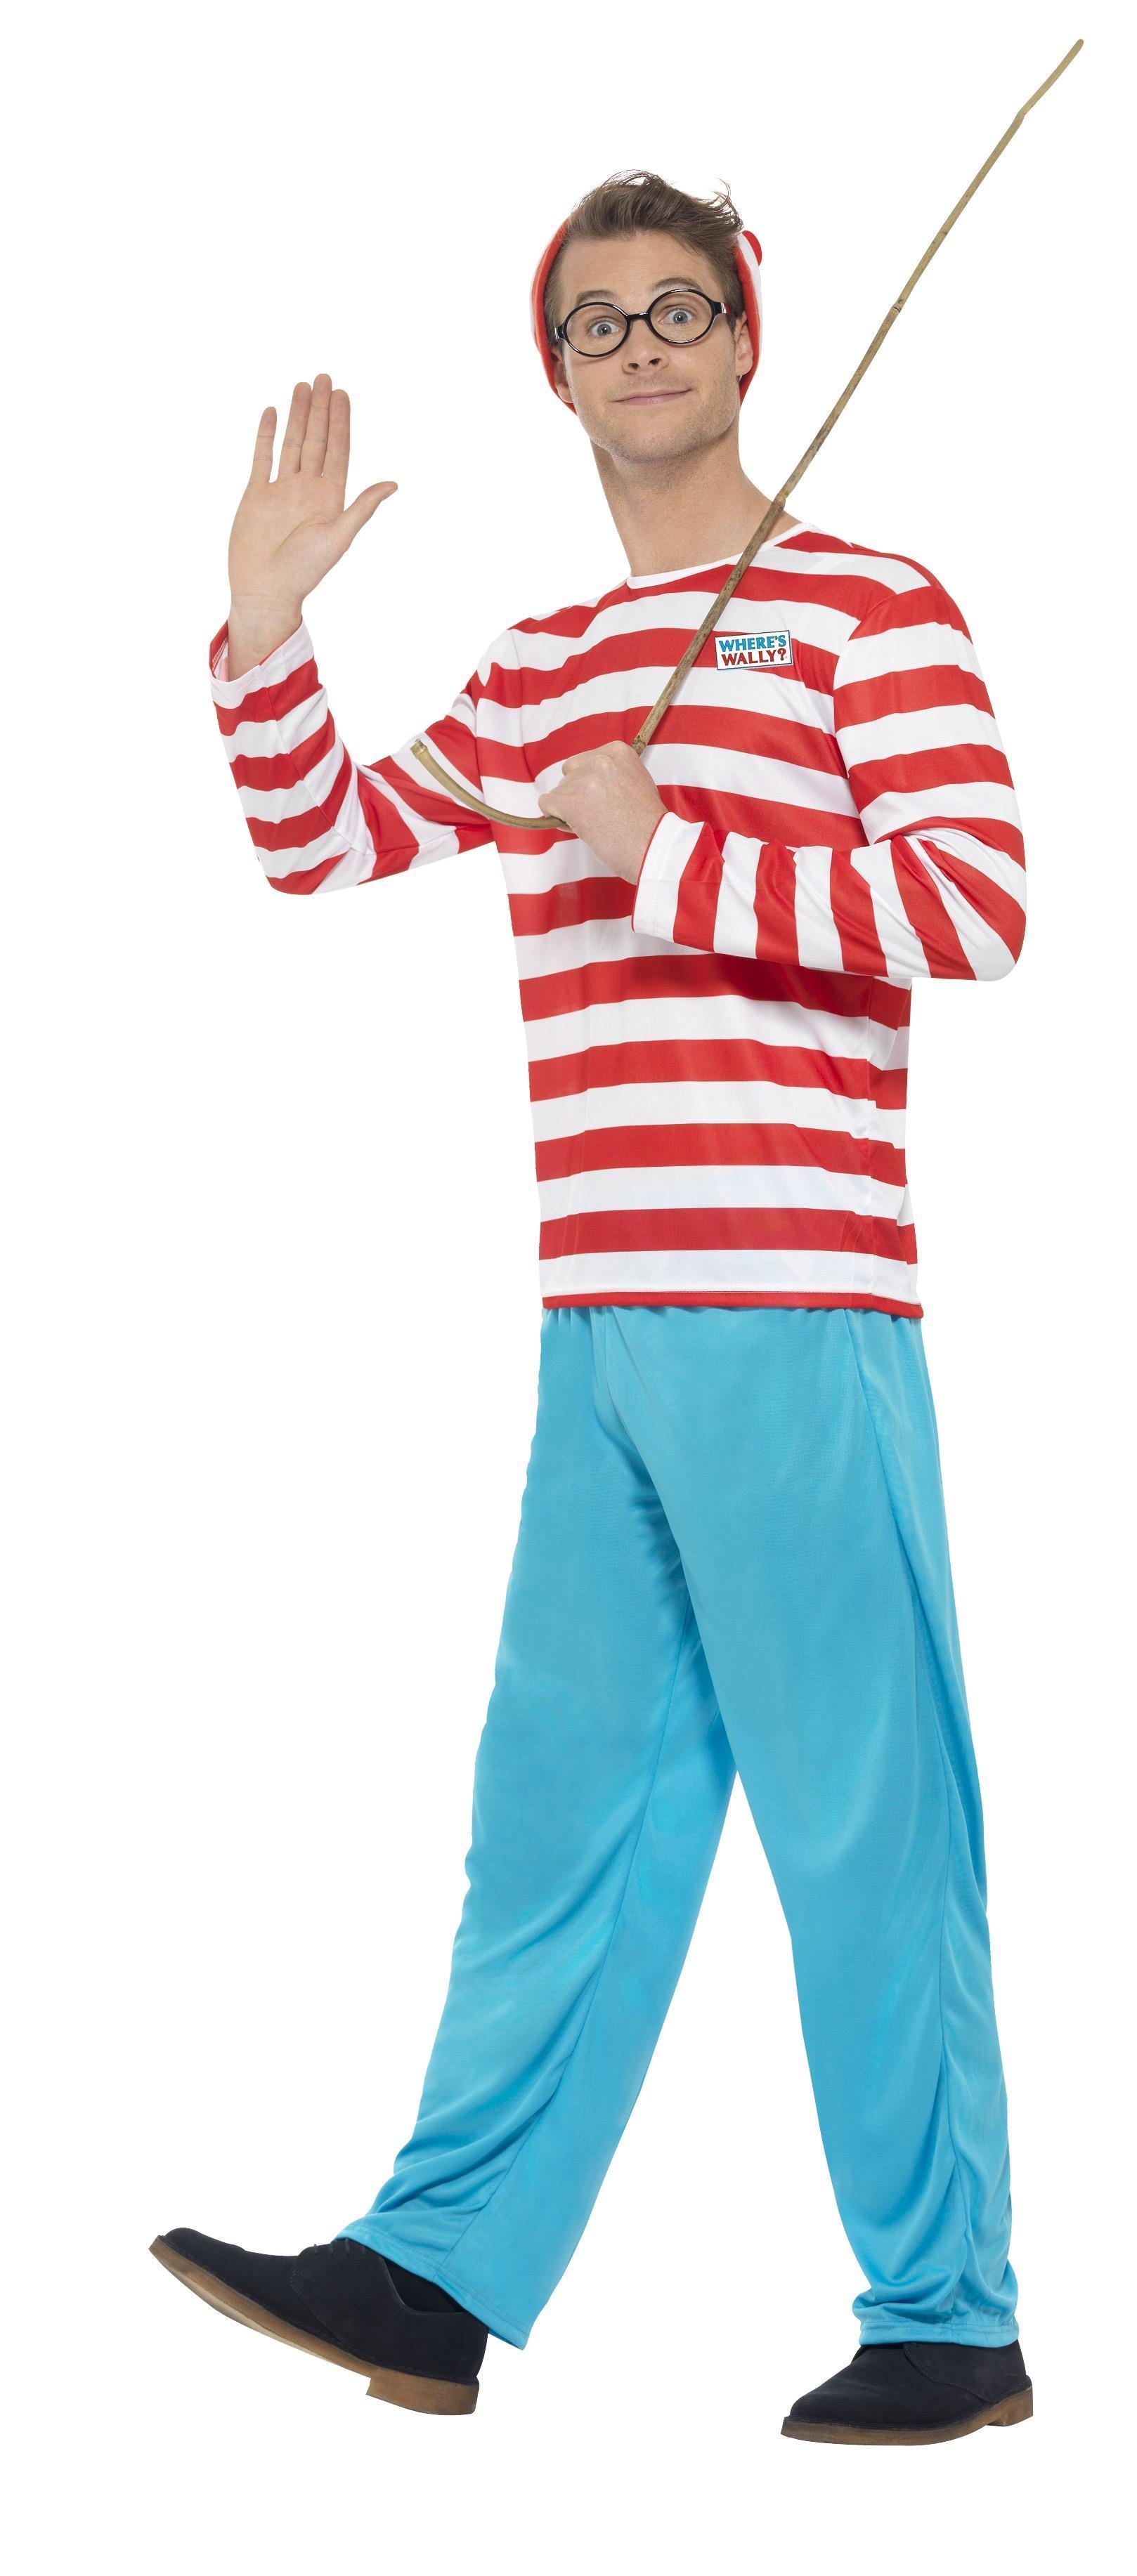 Officially licensed Men's Where's Wally? Costume